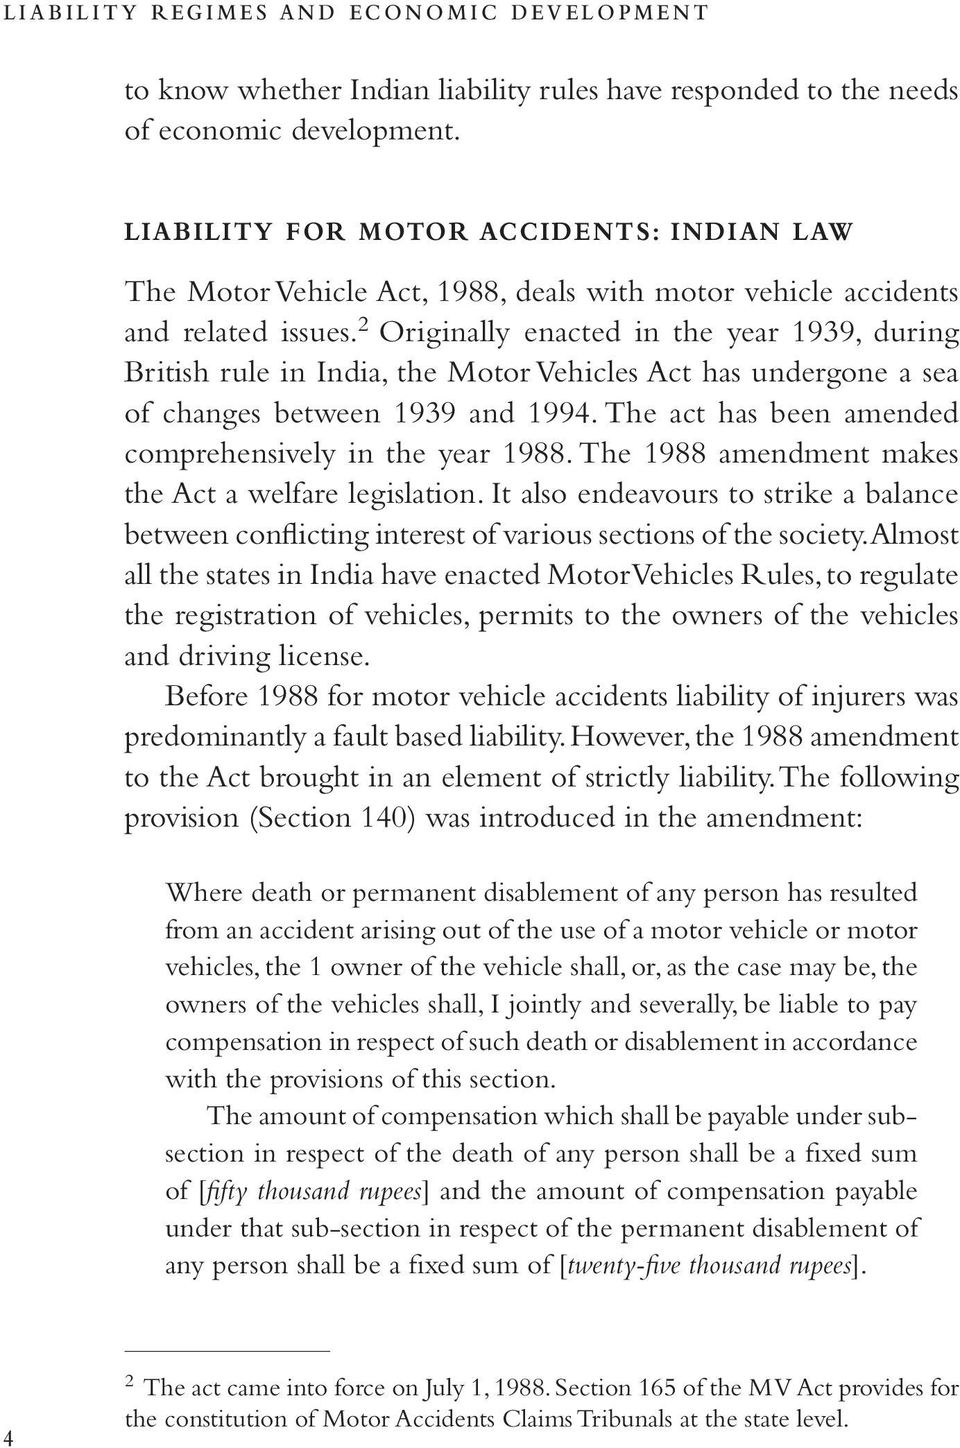 2 Originally enacted in the year 1939, during British rule in India, the Motor Vehicles Act has undergone a sea of changes between 1939 and 1994.